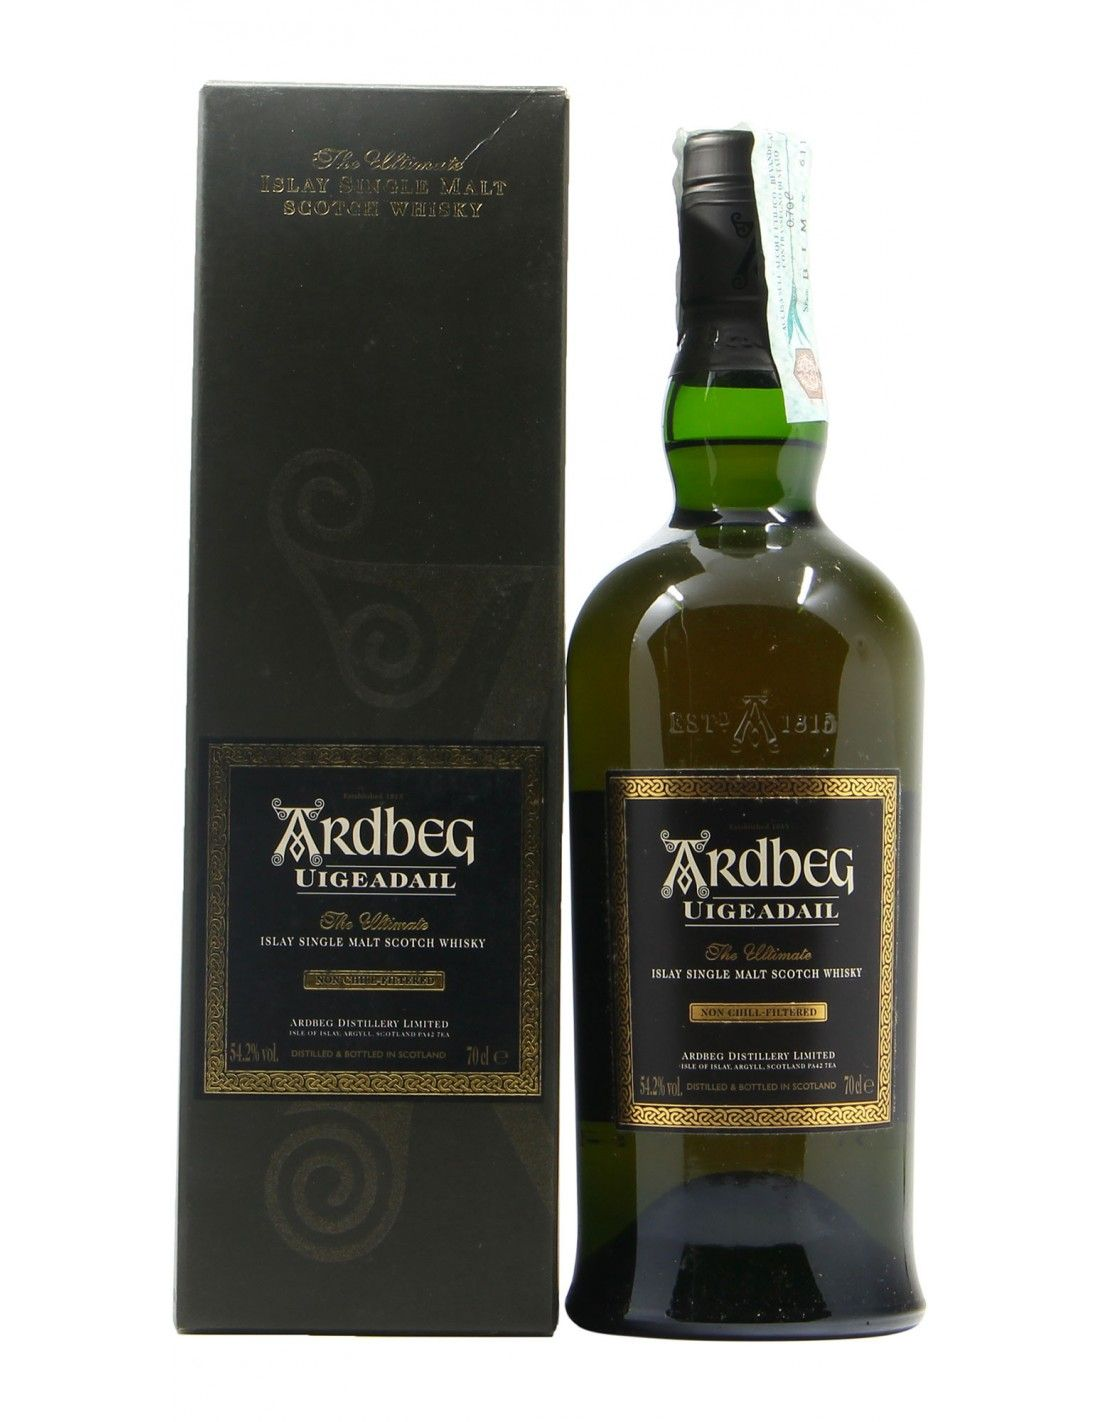 ISLAY SINGLE MALT SCOTCH WHISKY UIGEADAIL THE ULTIMATE NV ARDBEG Grandi Bottiglie